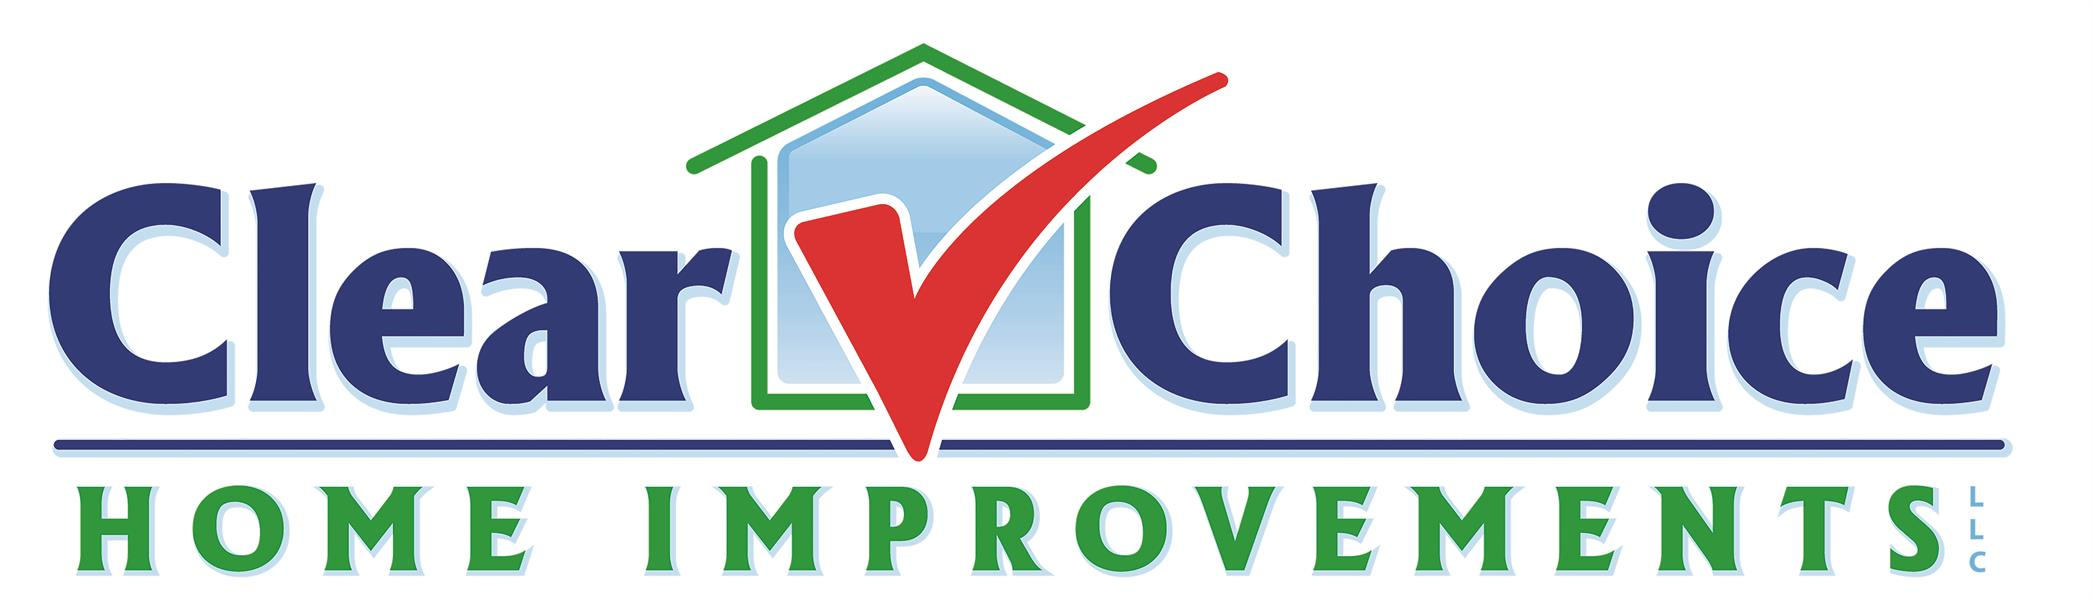 Clear Choice Home Improvements, LLC